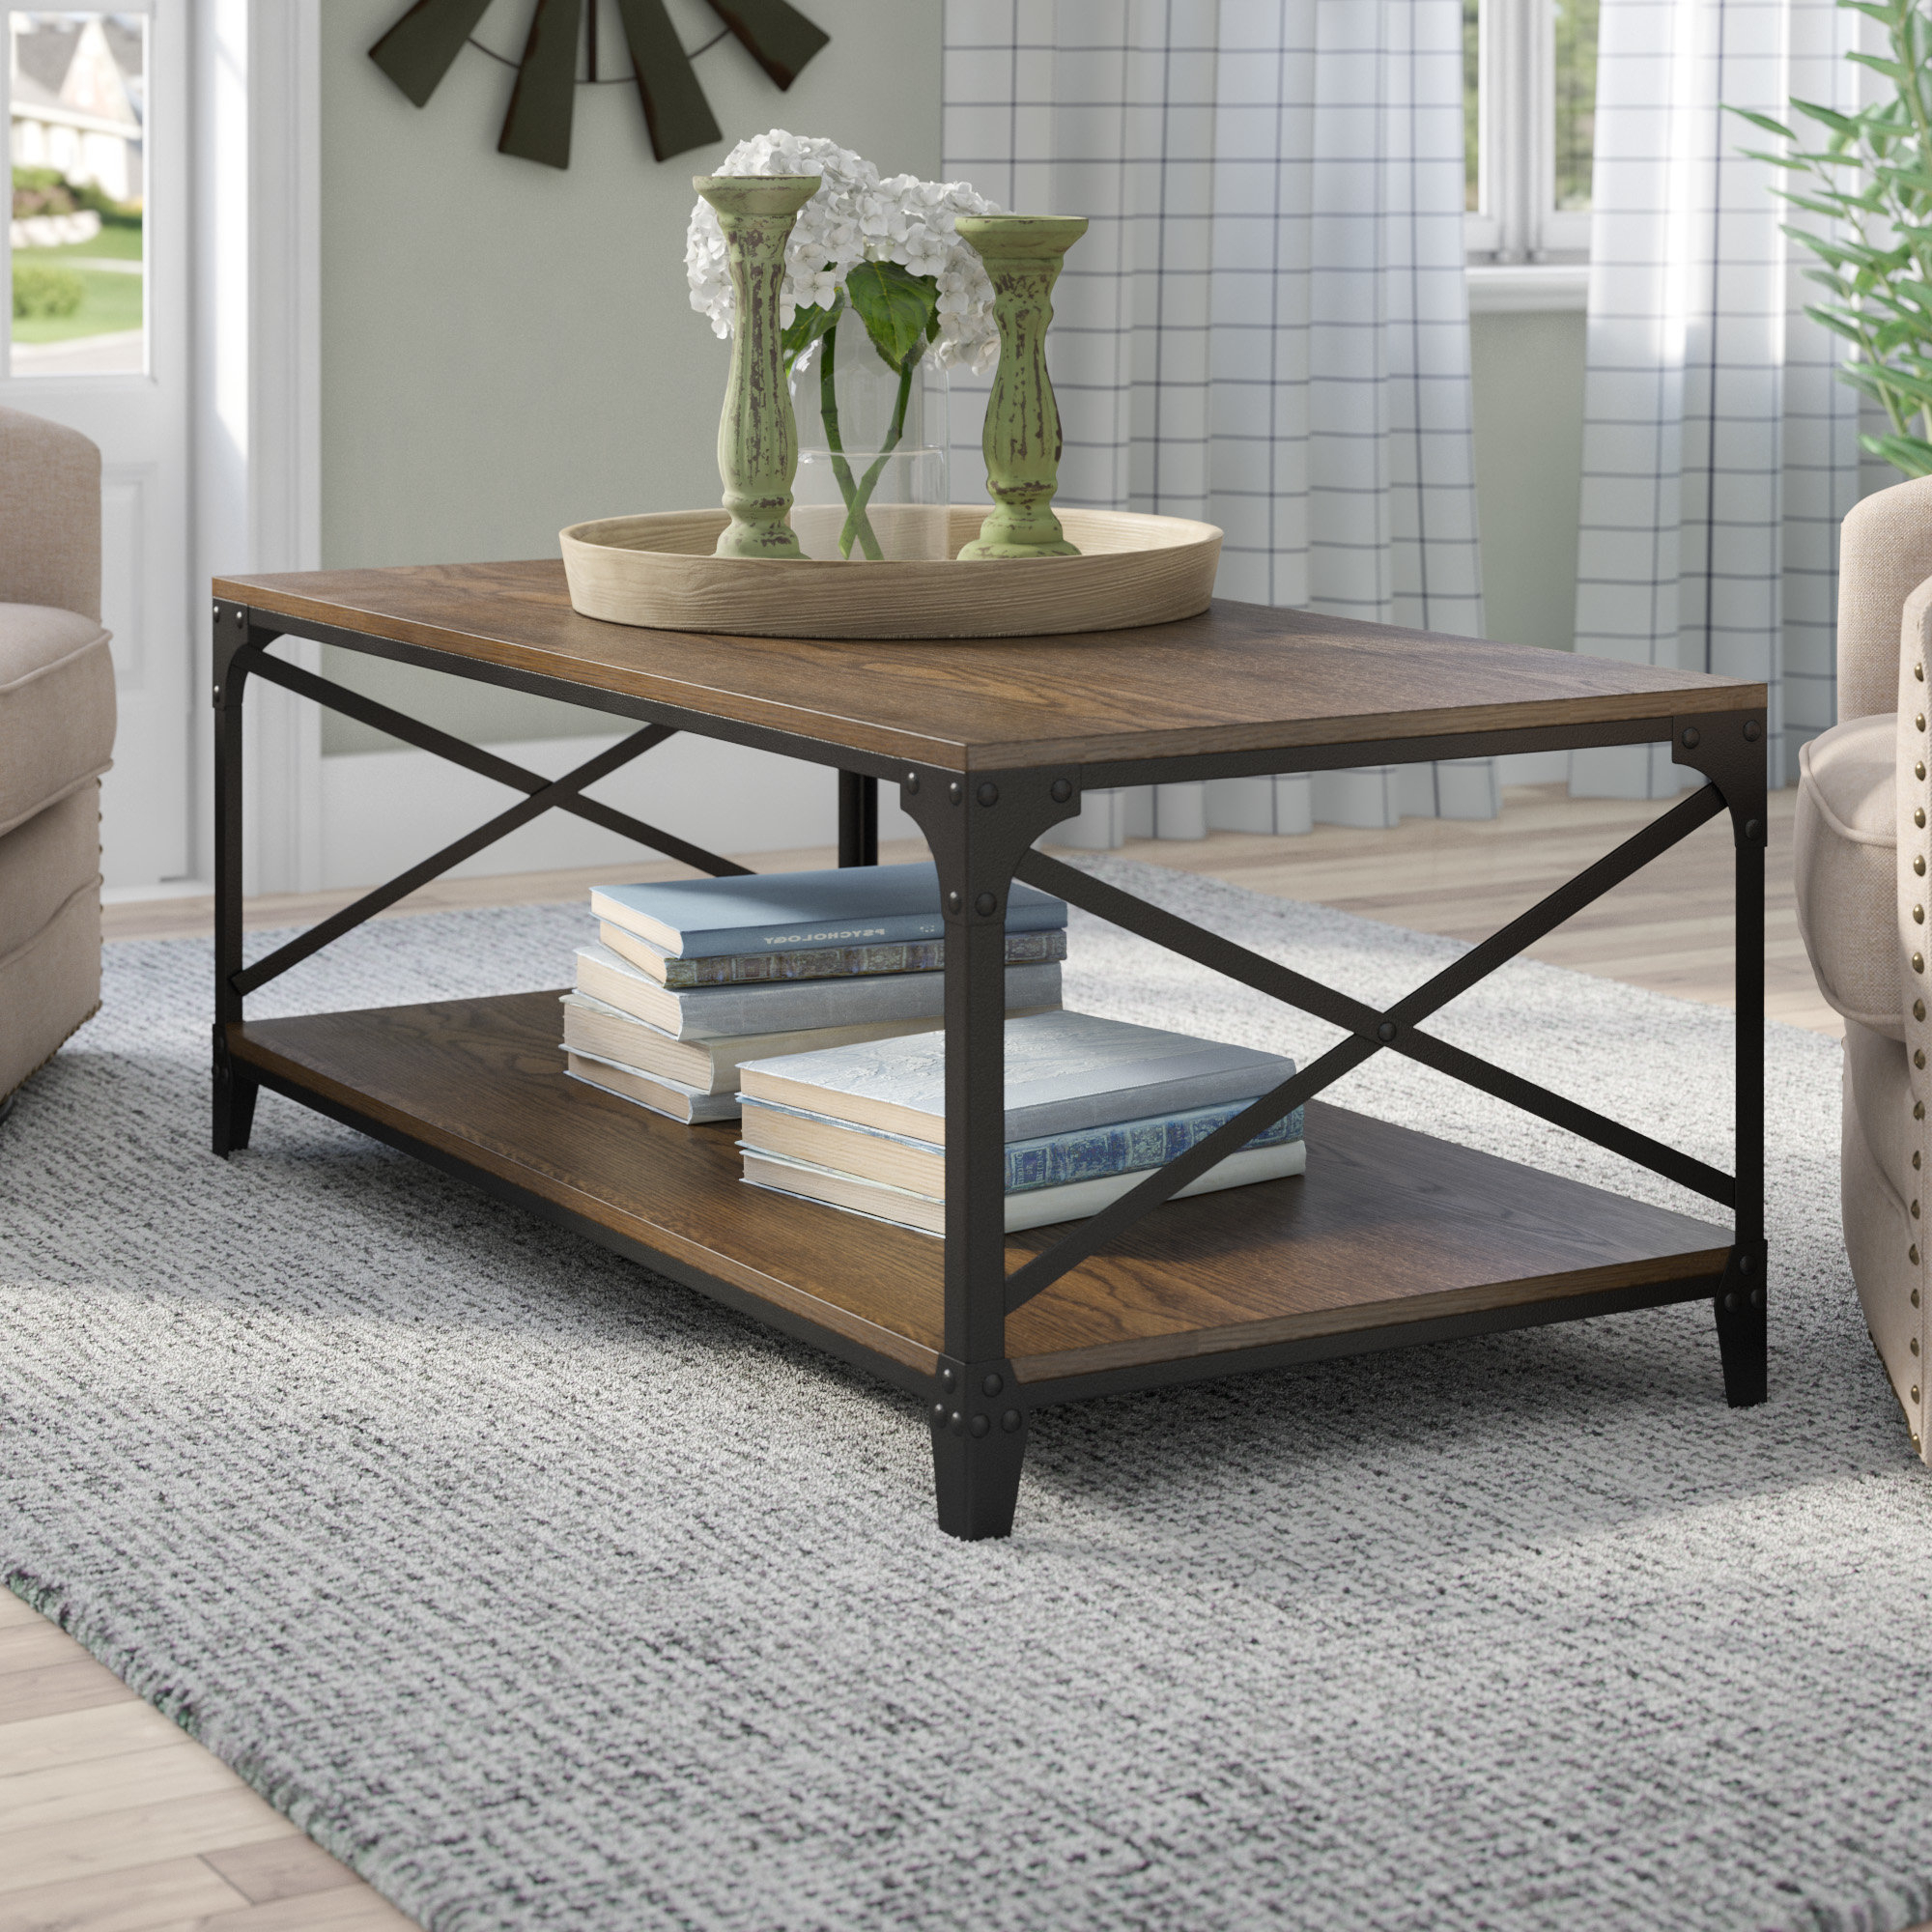 Wayfair Throughout Well Liked Large Scale Chinese Farmhouse Coffee Tables (View 15 of 20)